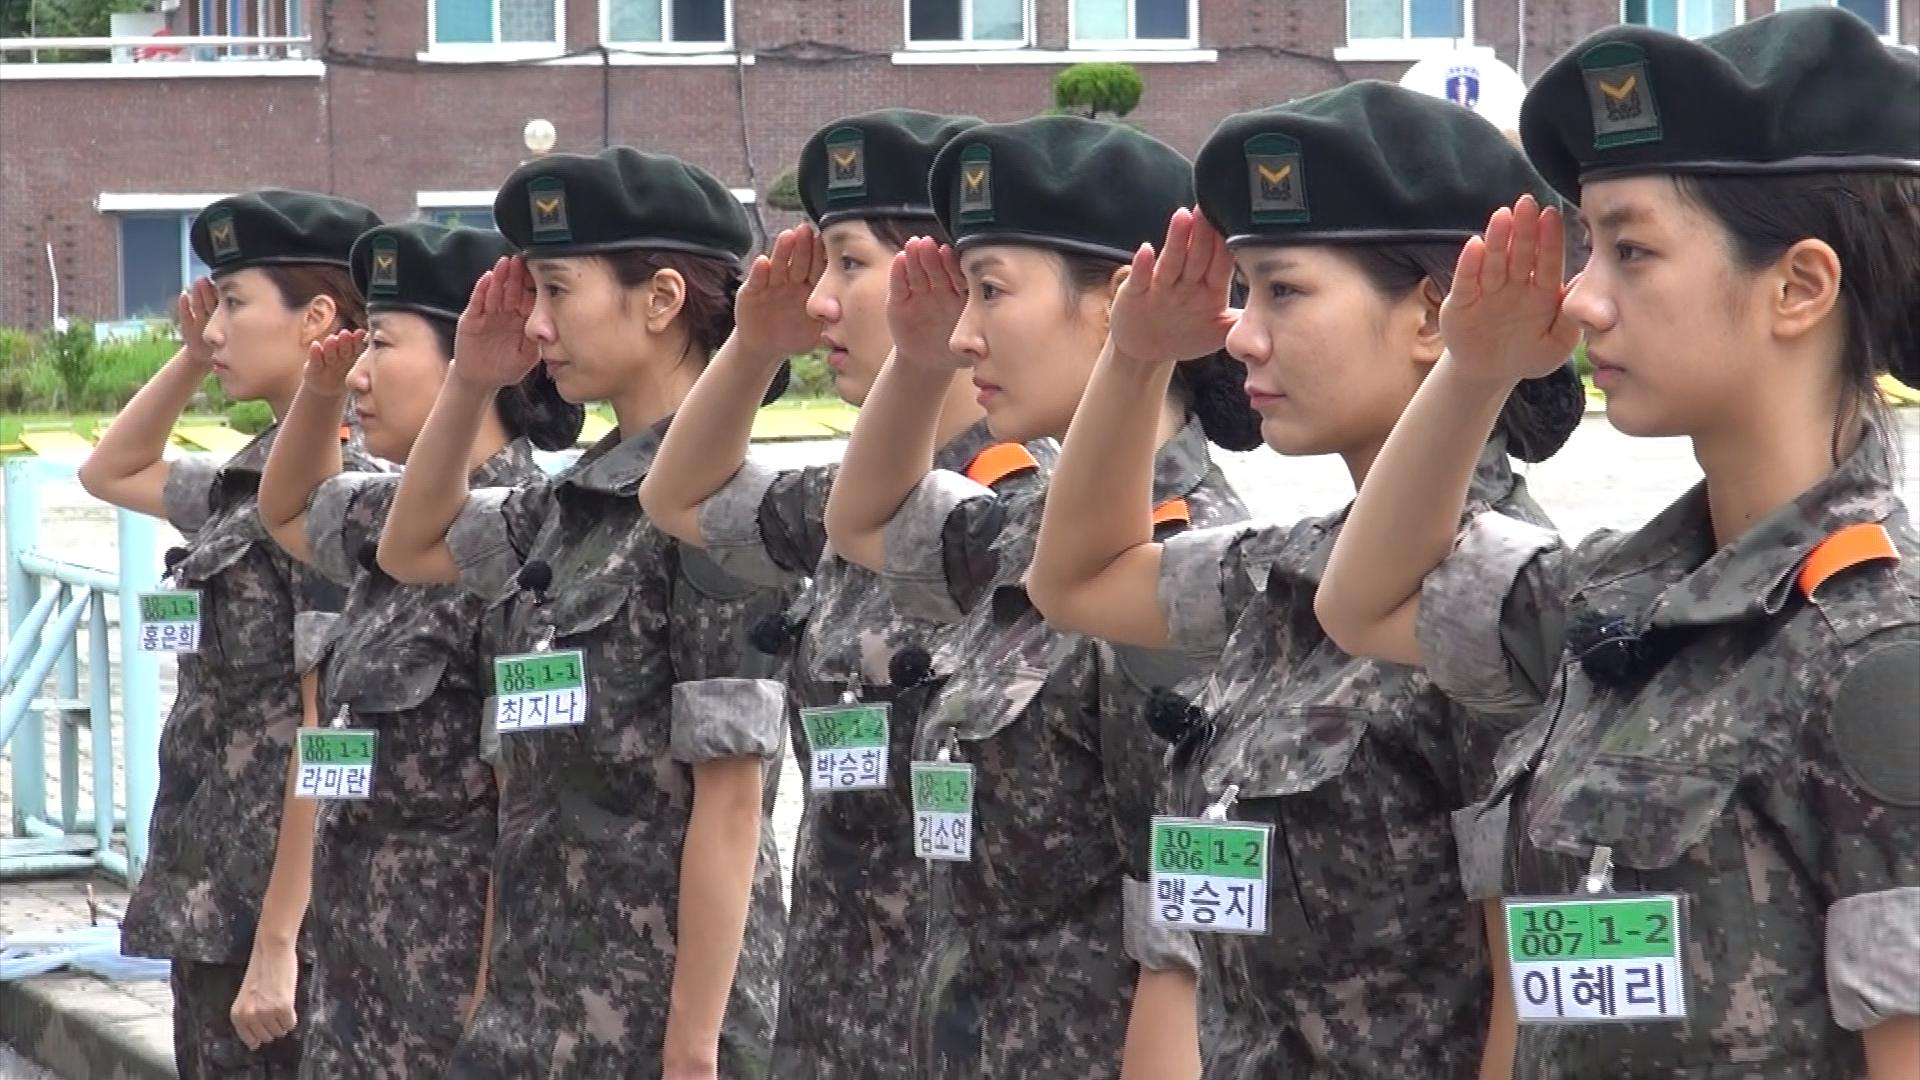 Korean army votes on which female idol could survive guerrilla training